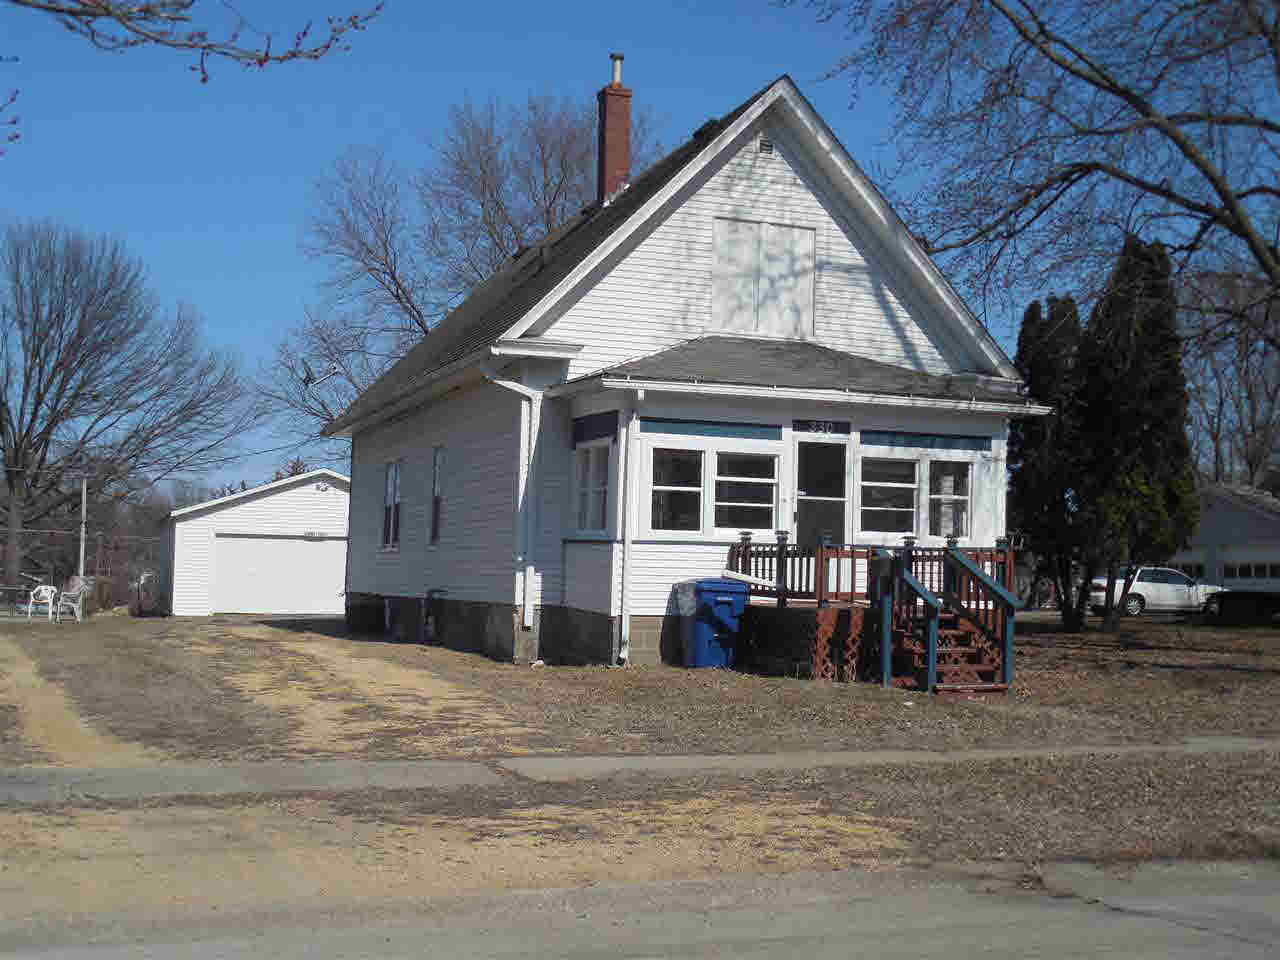 NICE BUNGALO, can move right in with a little paint and some flooring clean up. Garage and yard are in good condition, and the sellers are MOTIVATED AND WILL LOOK SERIOUSLY AT ALL OFFERS!!